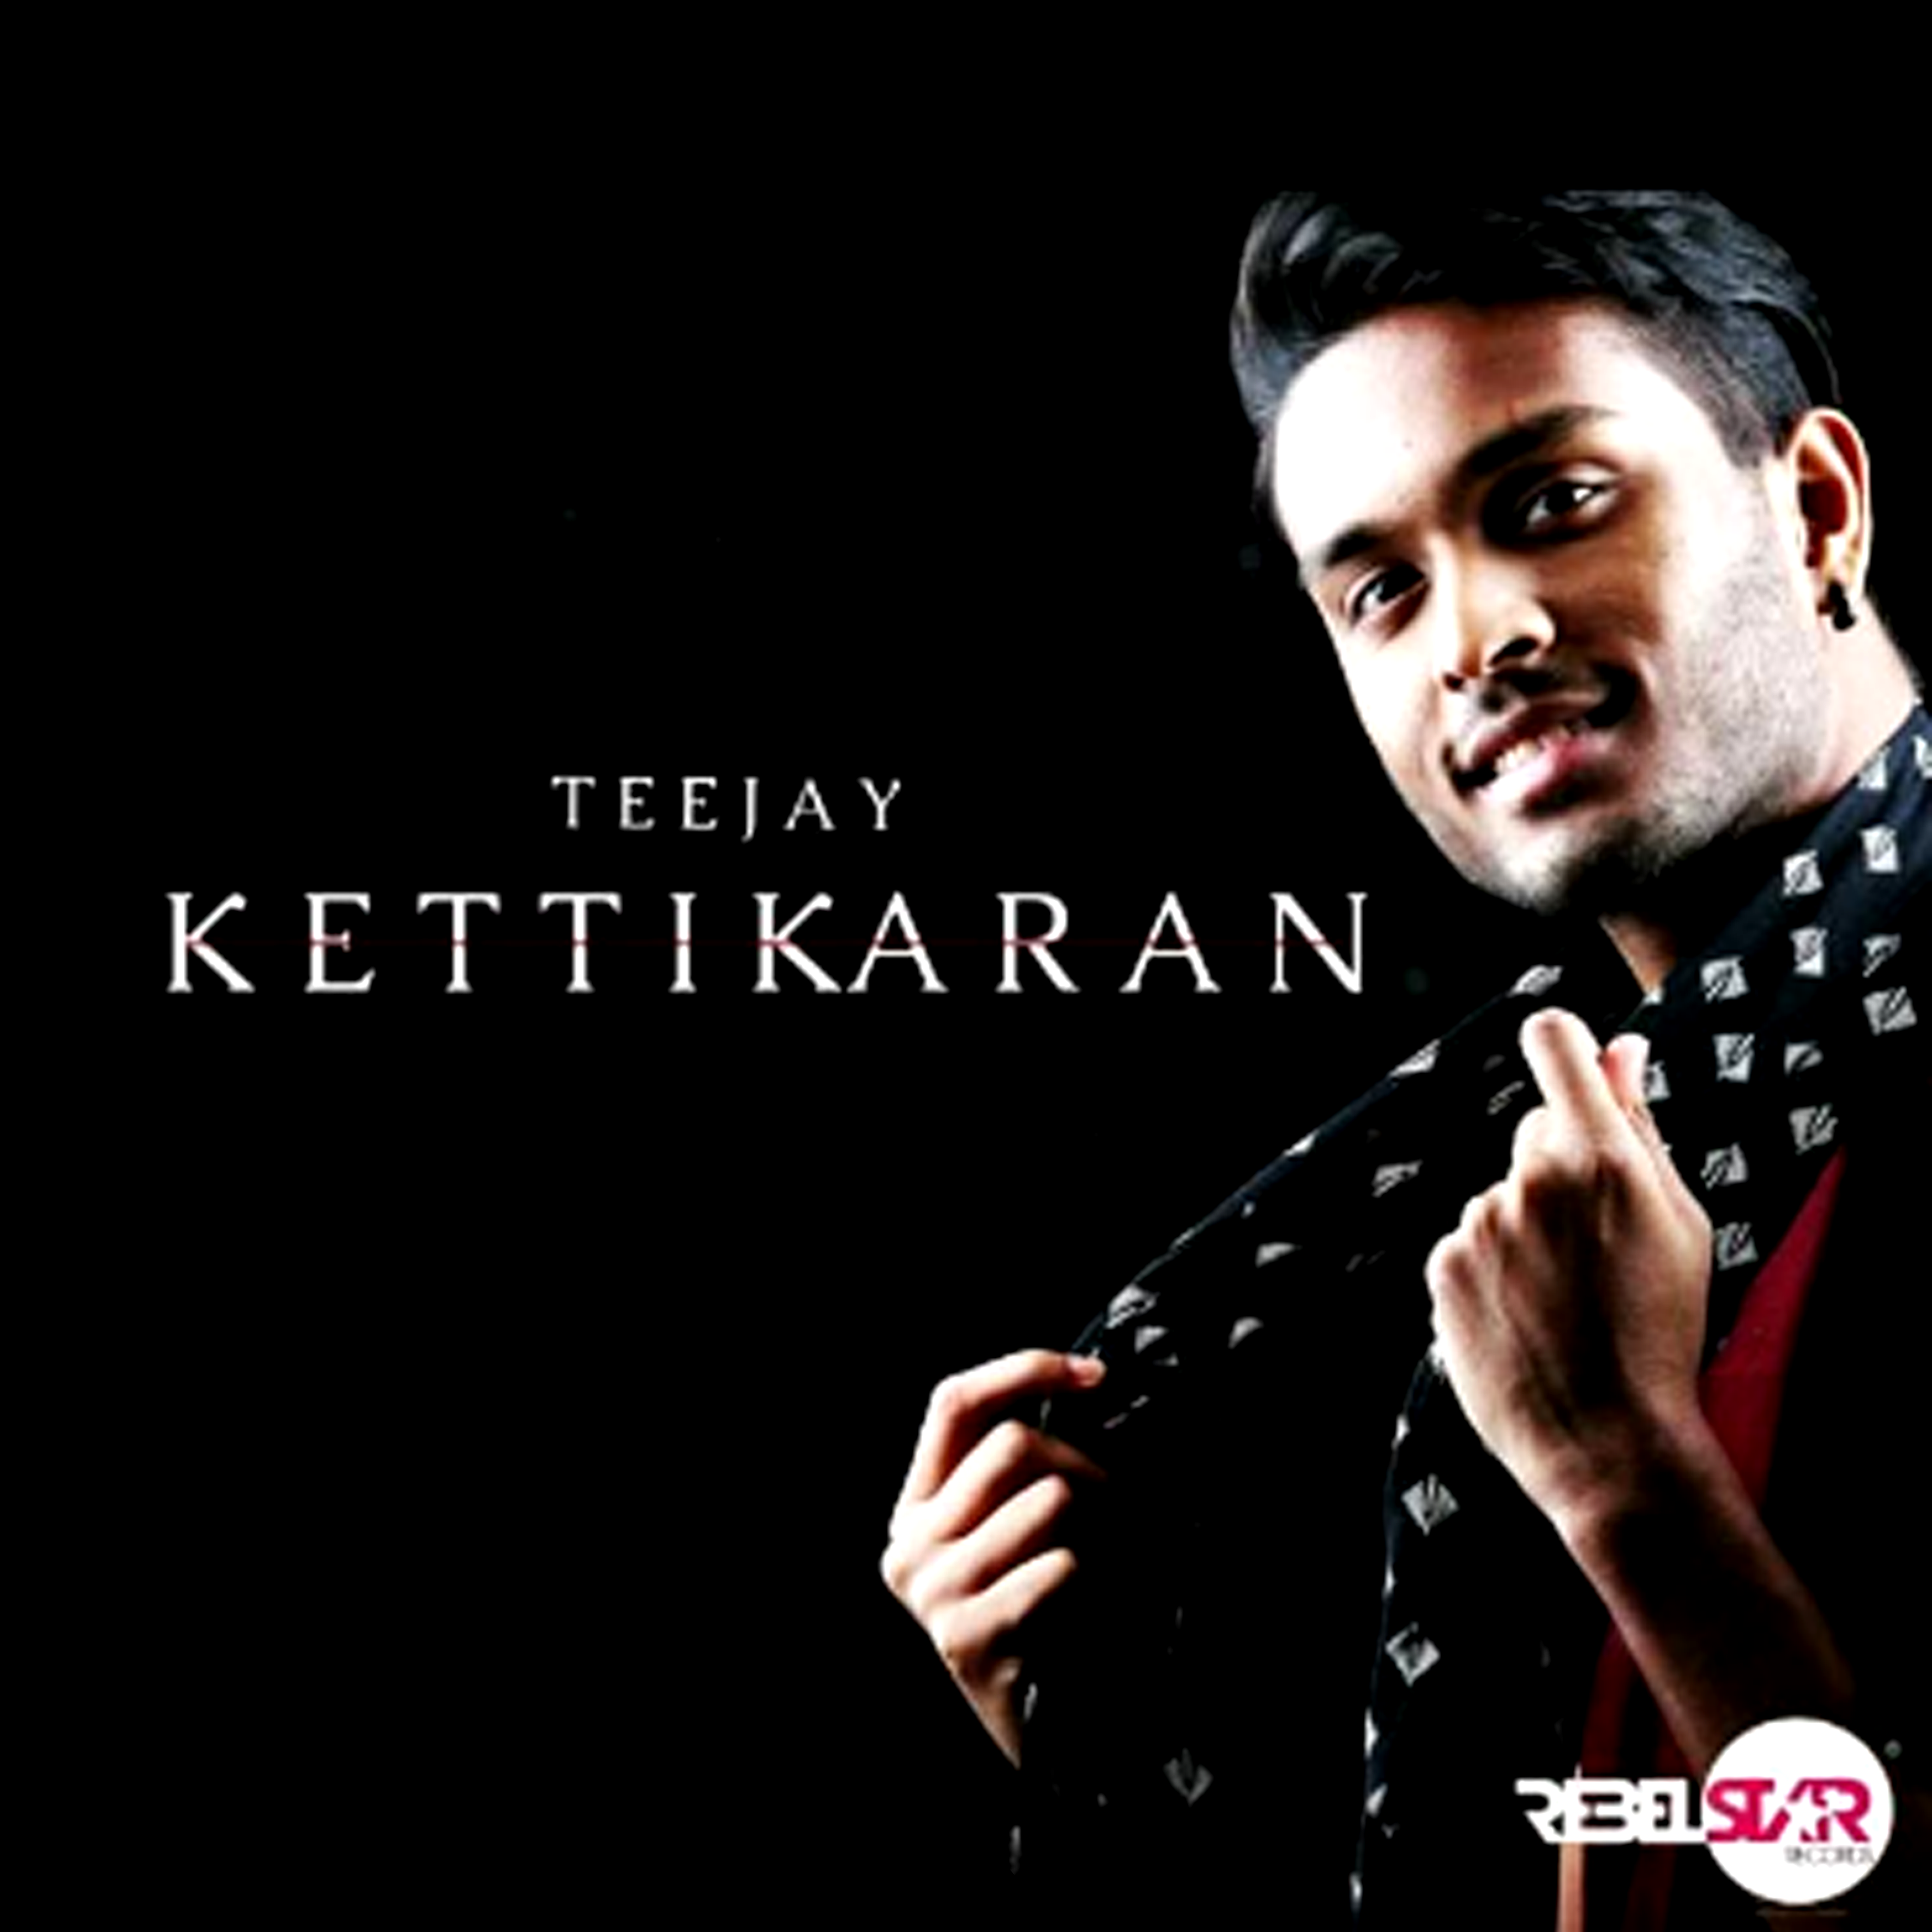 teejay album video songs free download starmusiq